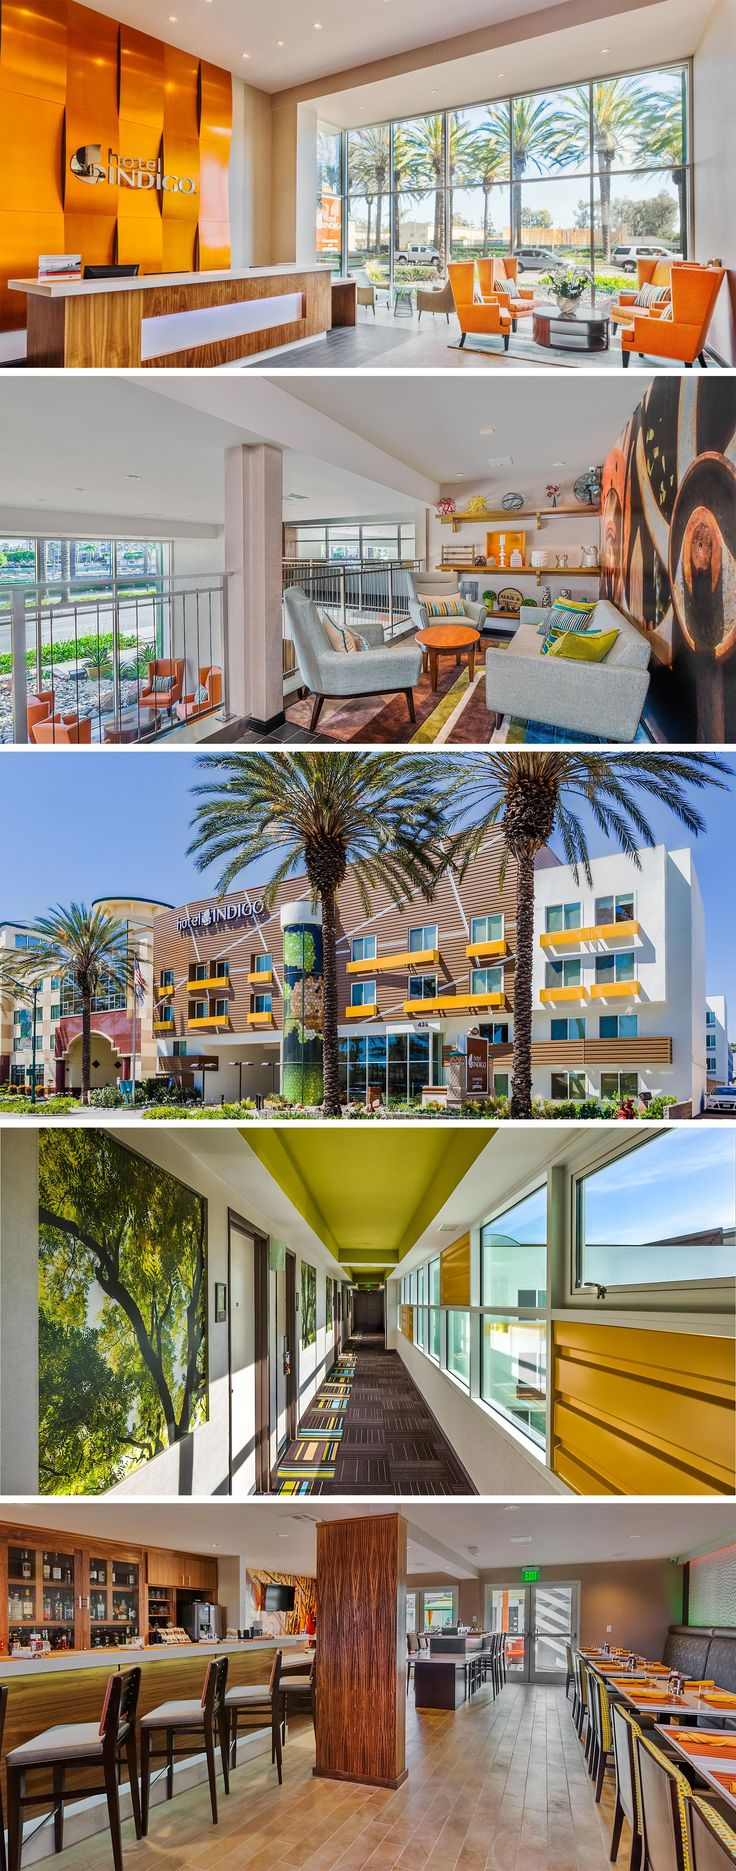 Hotel Indigo Anaheim is my recommendation of where to stay near Disneyland. Close to the parks, affordable and stylish with great customer service.